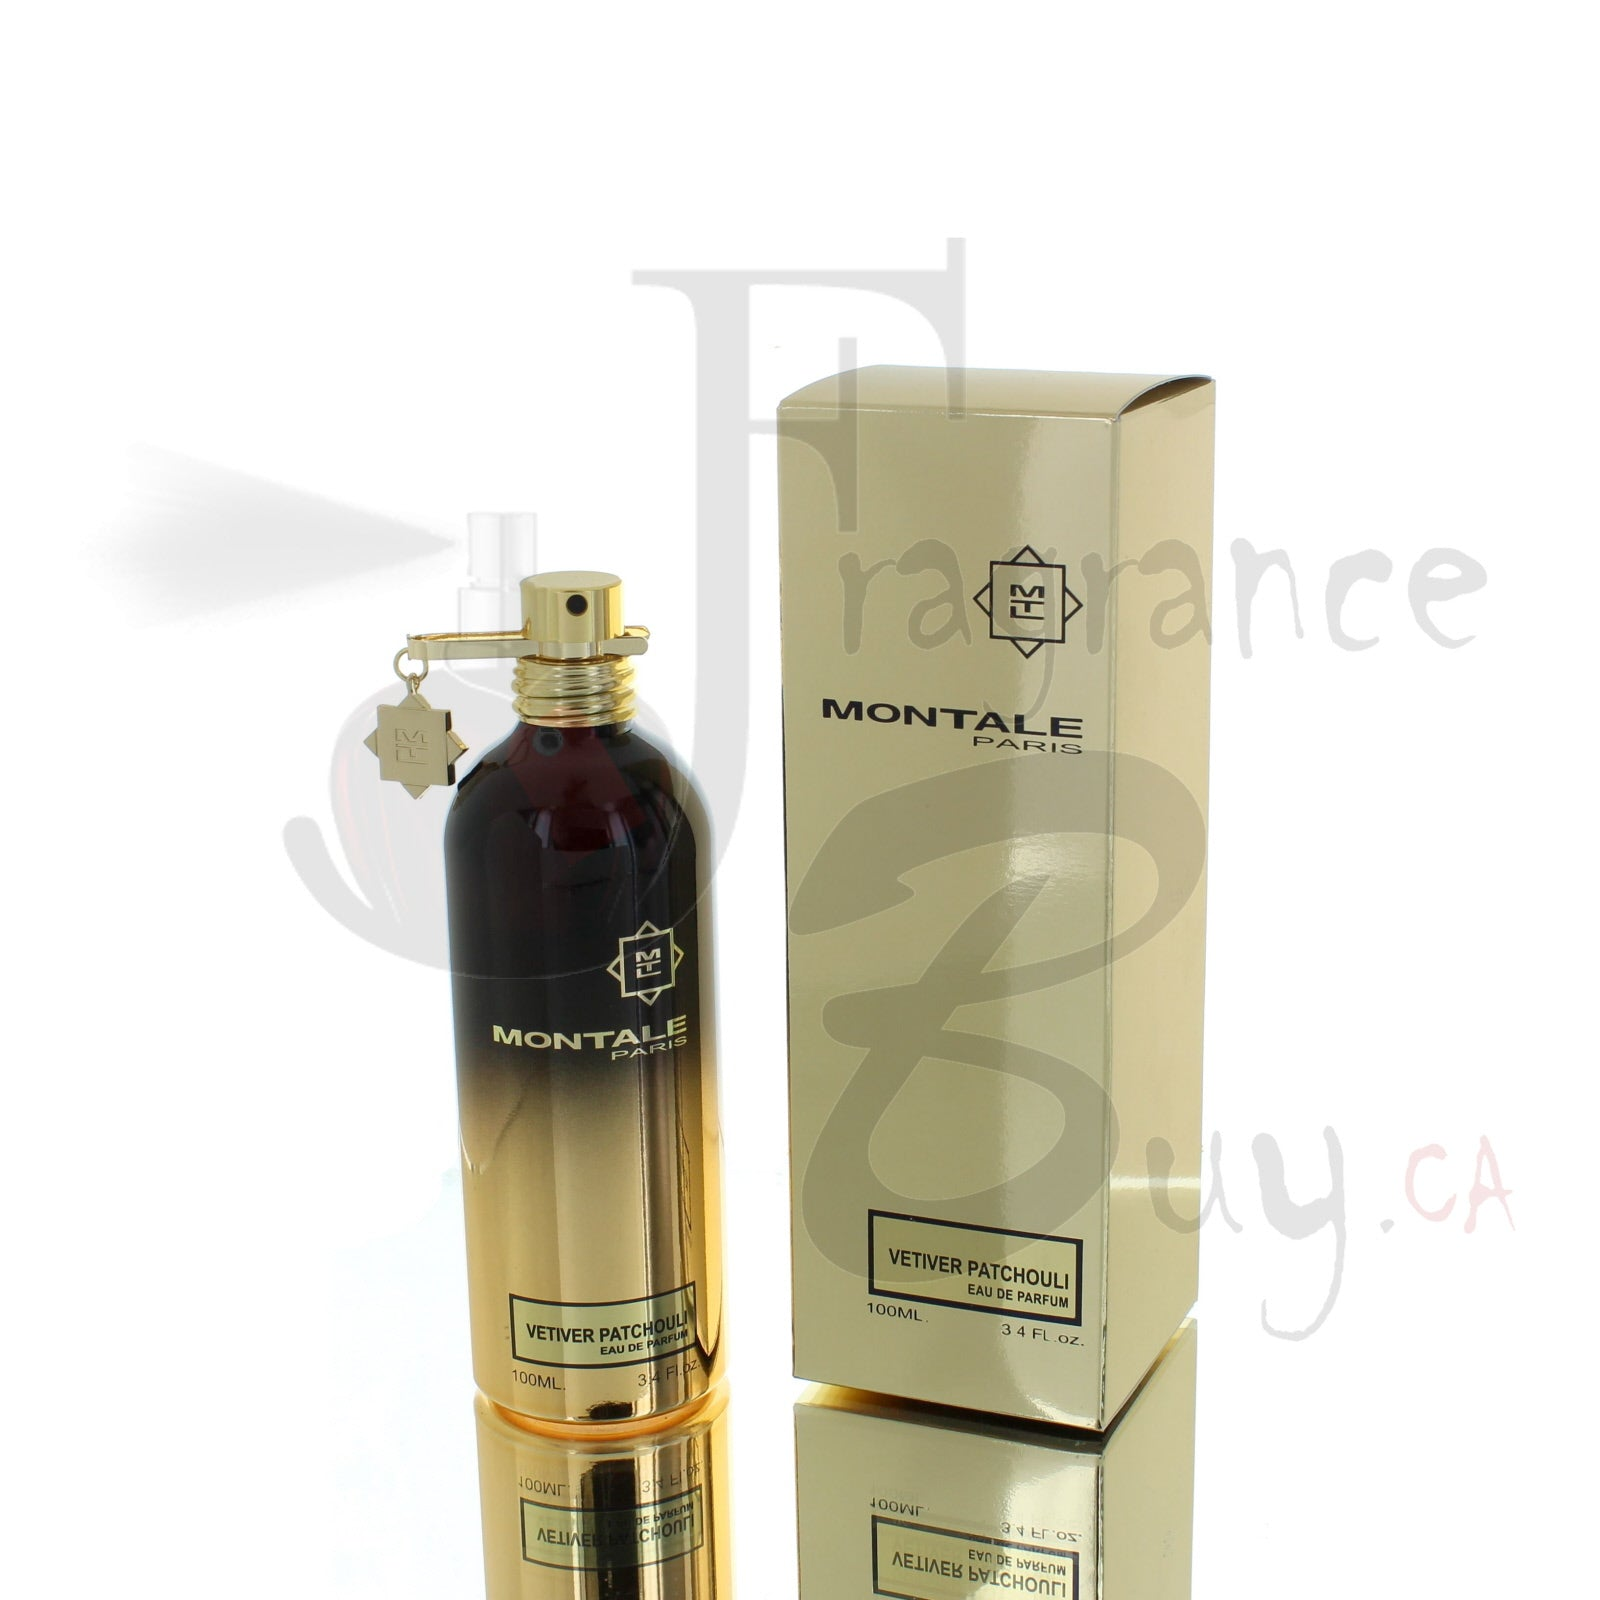 Montale Vetiver Patchouli For Man/Woman